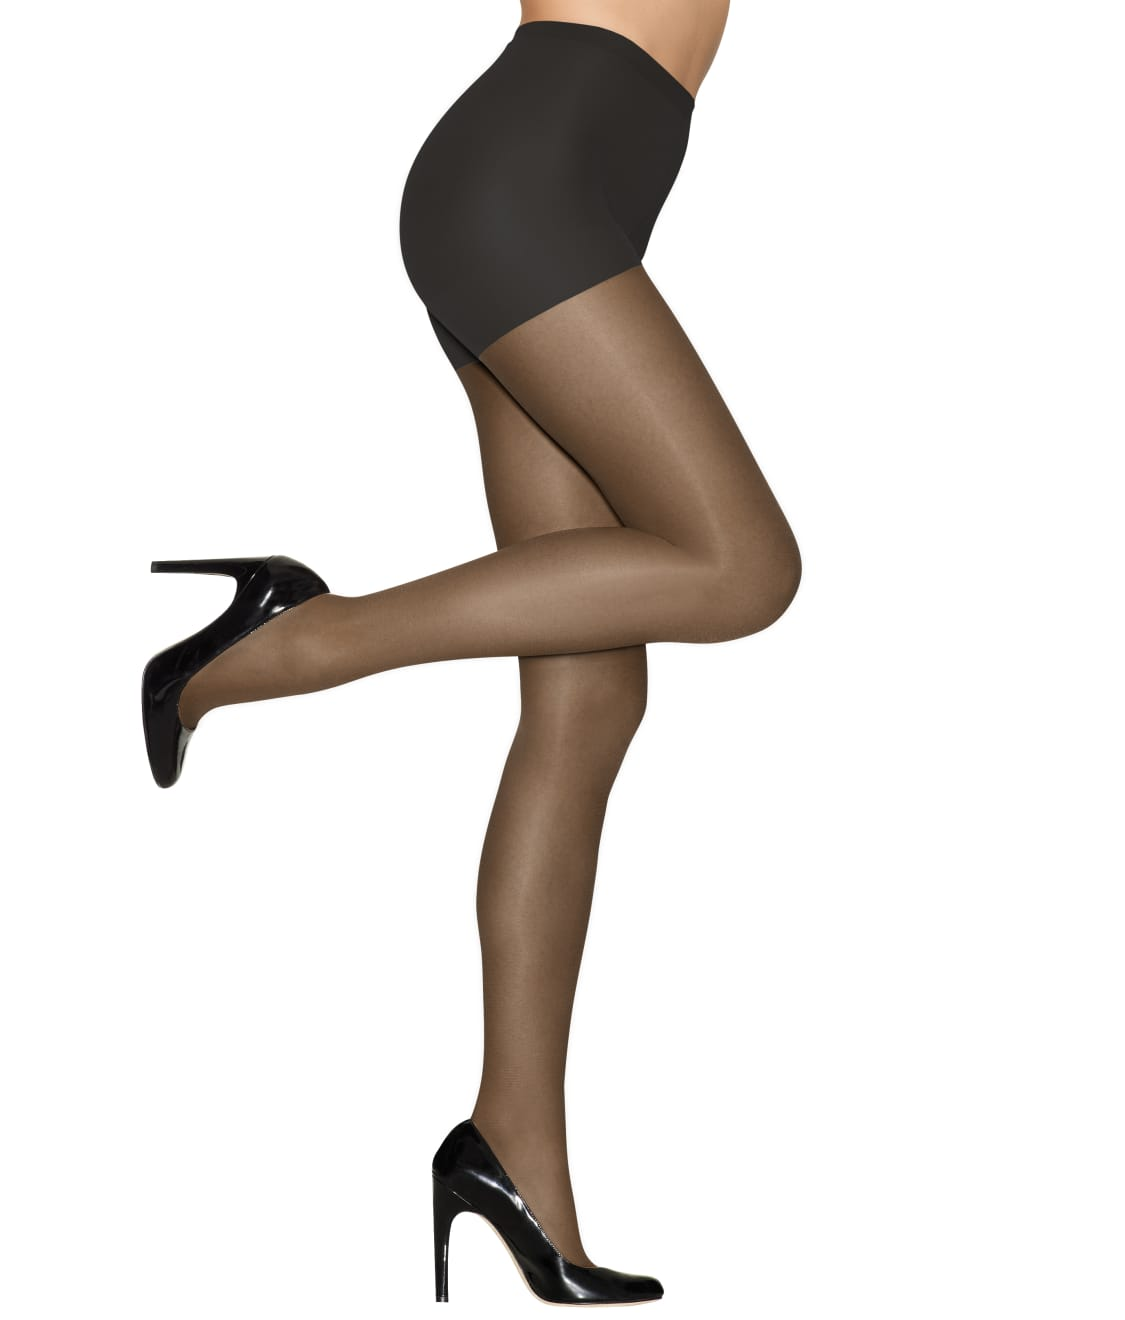 628d9f665e3 See Hanes Alive Full Support Control Top Pantyhose in Jet